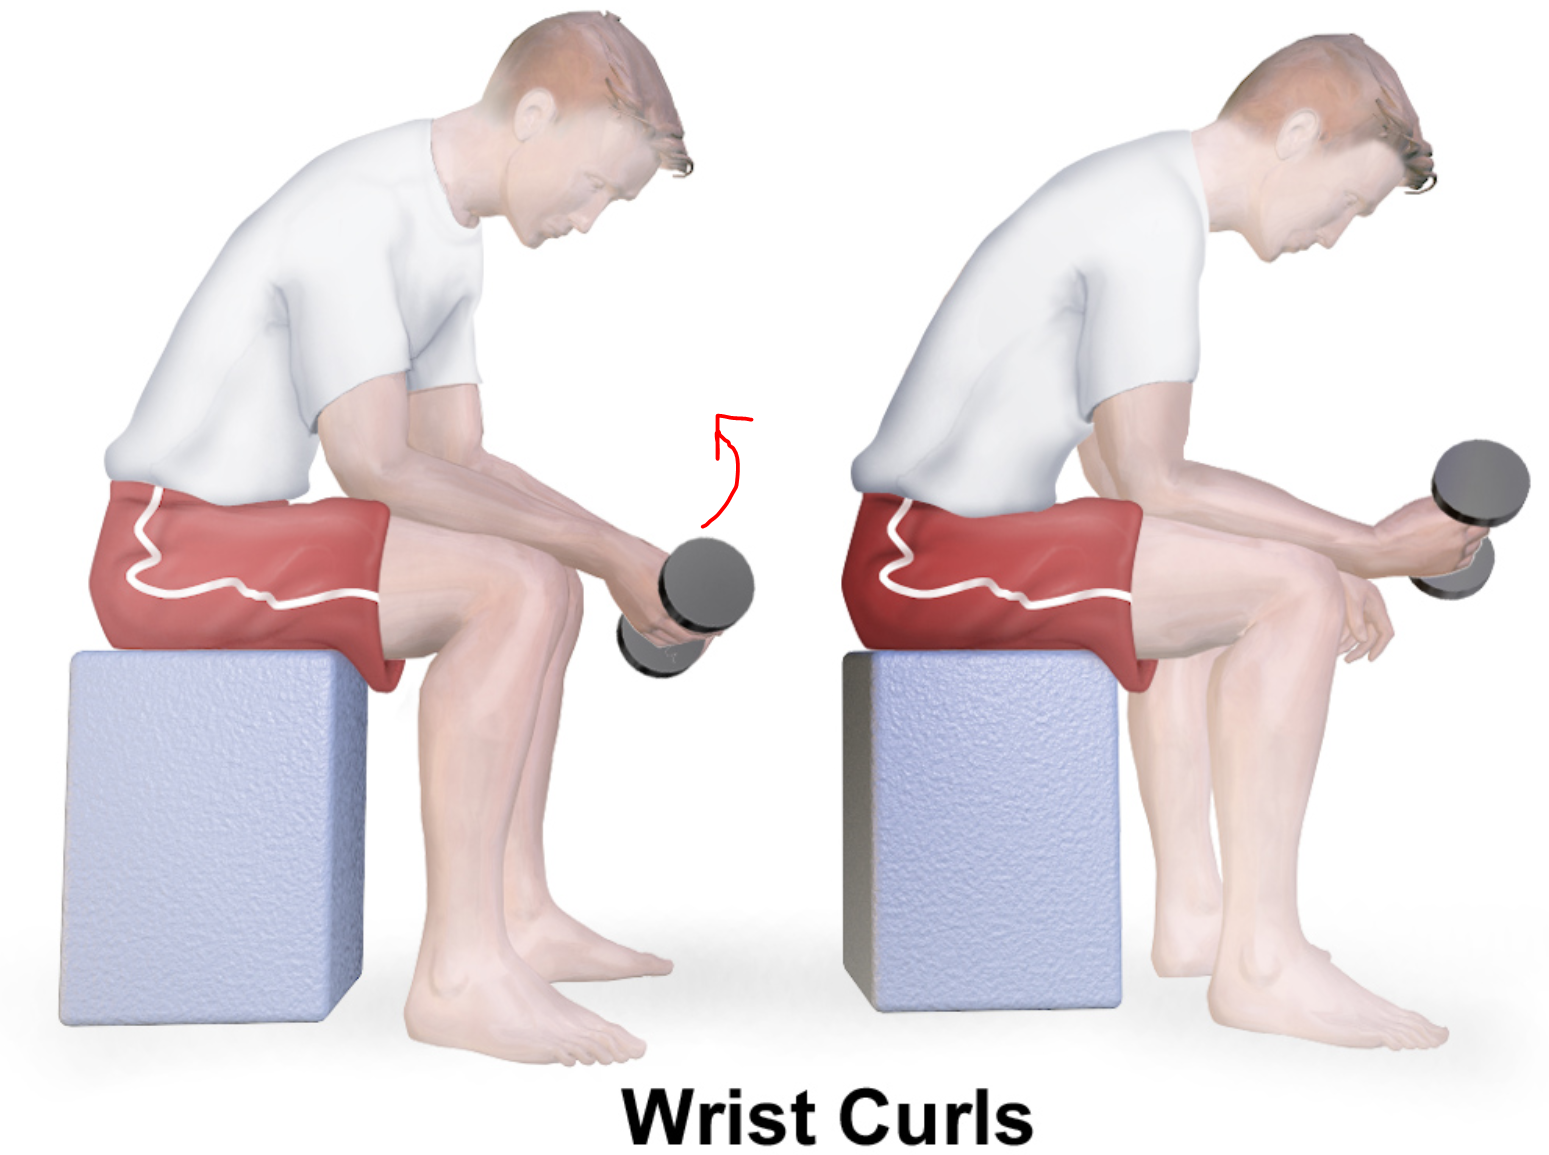 Use wrist curls to strengthen your muscles and reduce numbness while riding a mountain bike